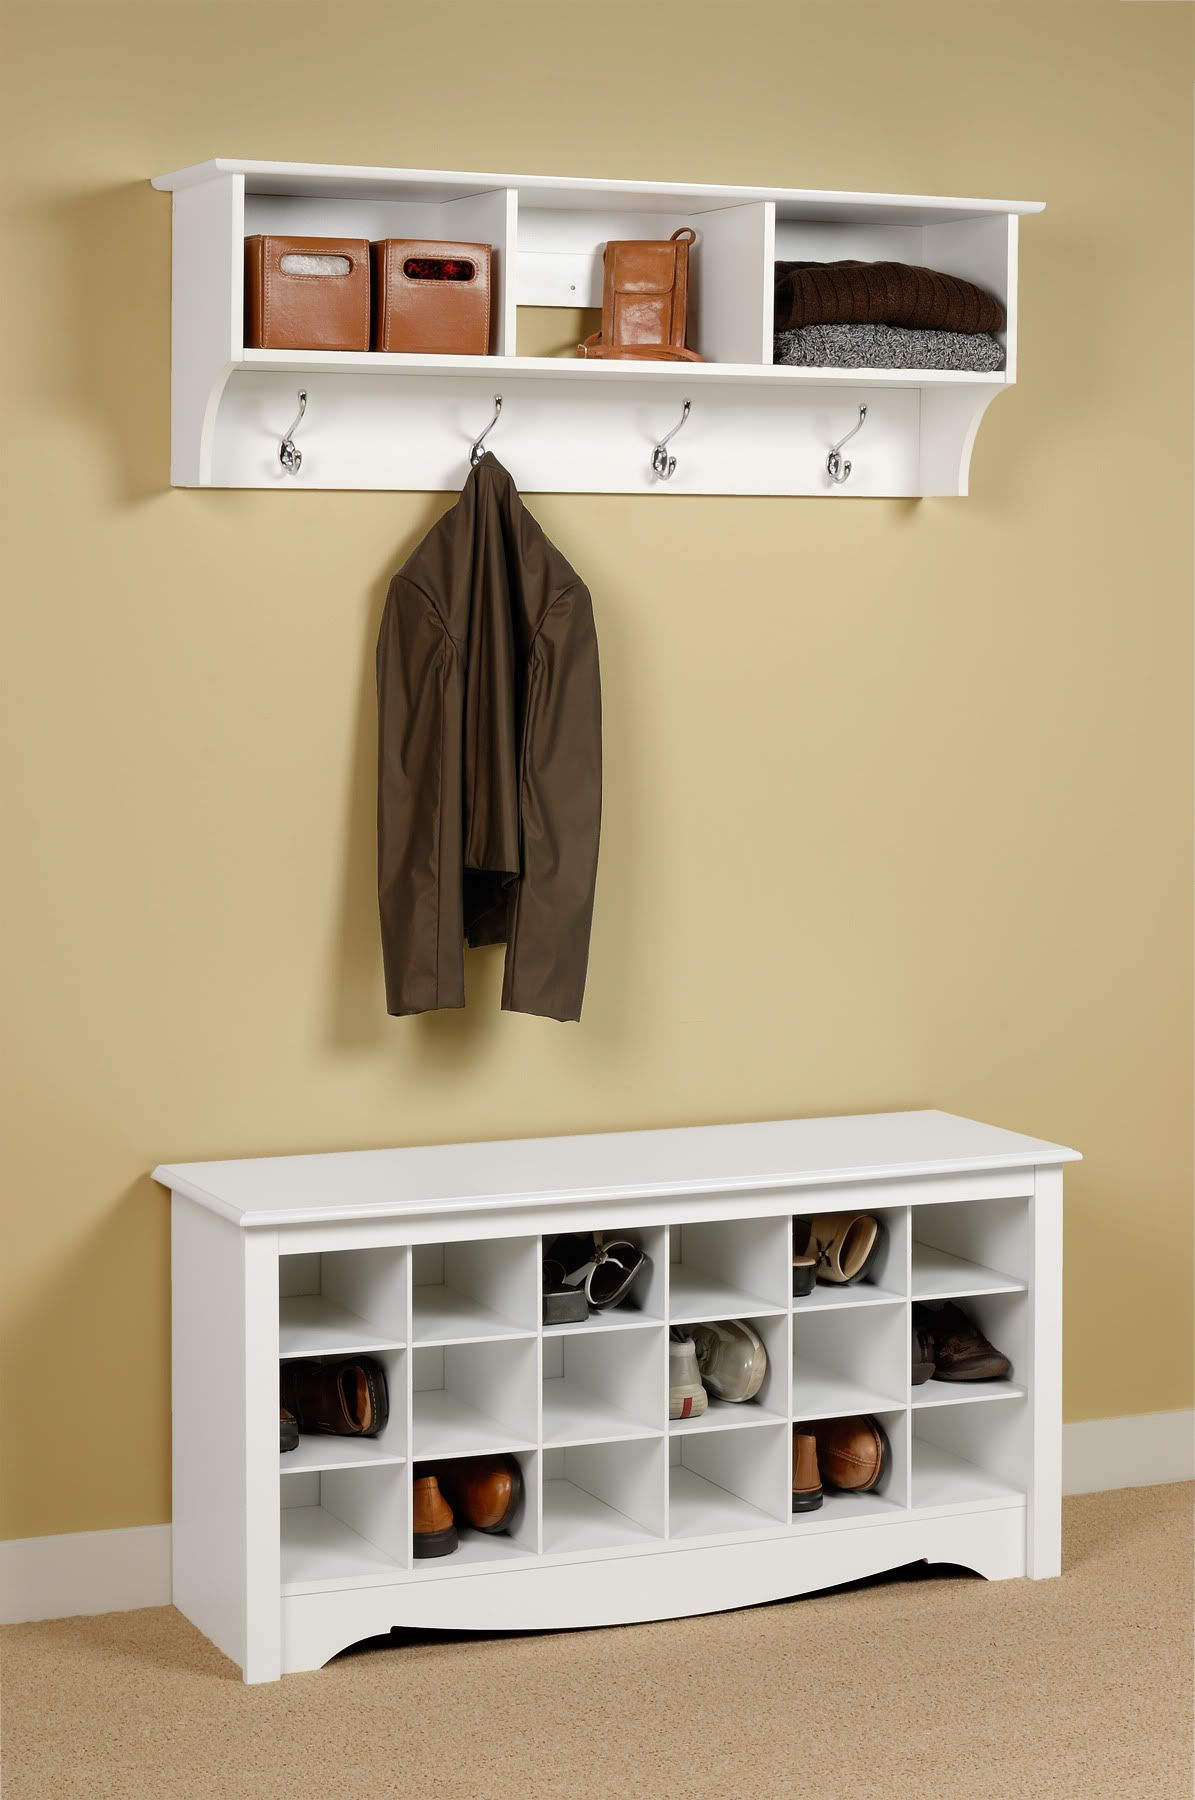 Utilise Small Places By Using Wall Storage Entryway Shoe Storage Bench With Shoe Storage Entryway Bench Storage